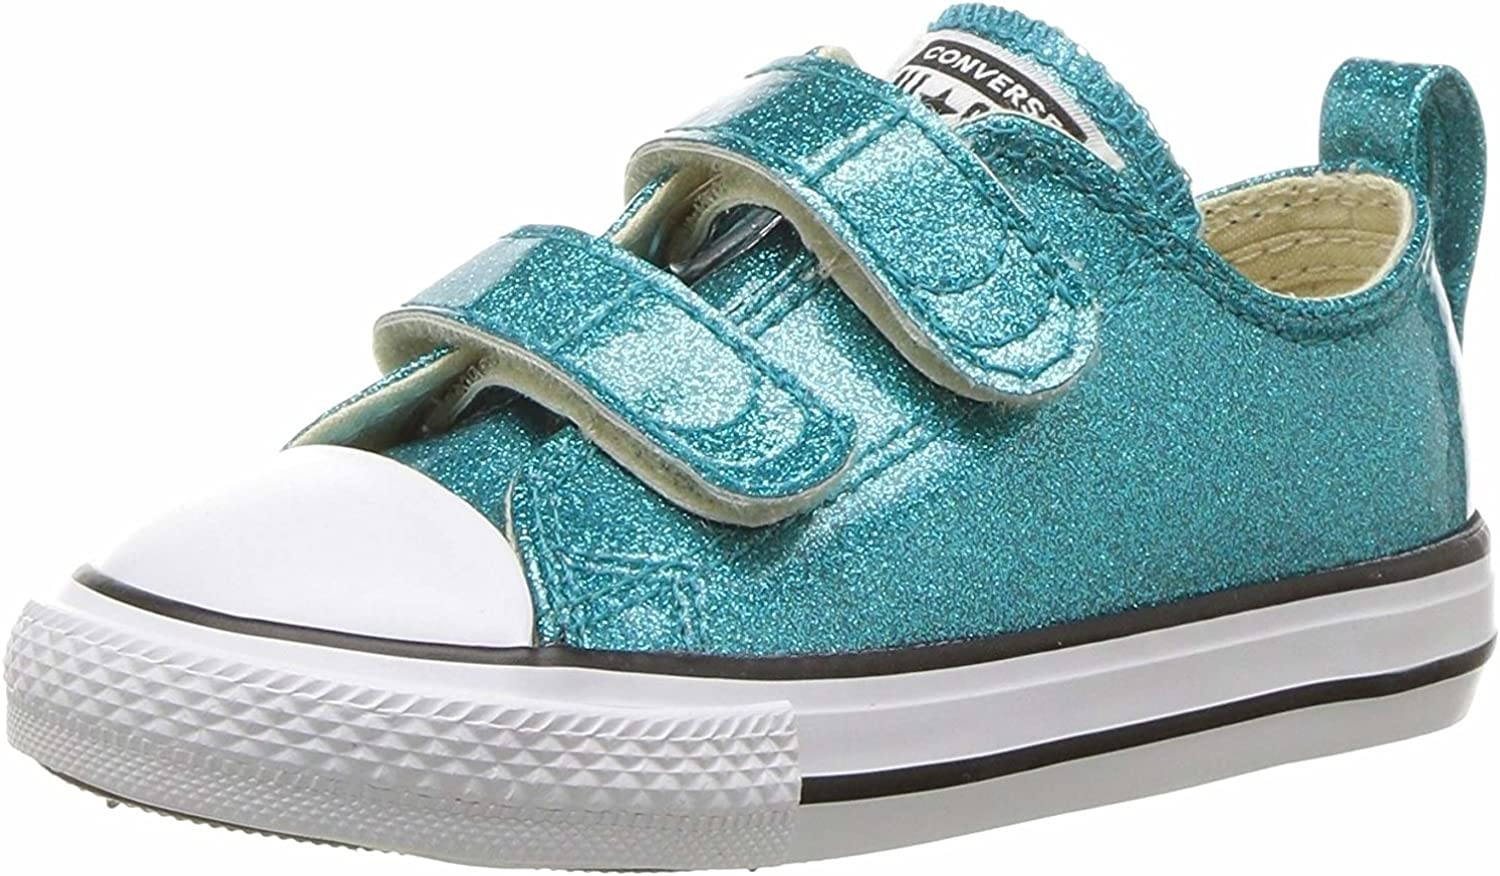 Converse Unisex-Child Chuck Taylor All Star All items in the store Glitter Low 2v S New life Top